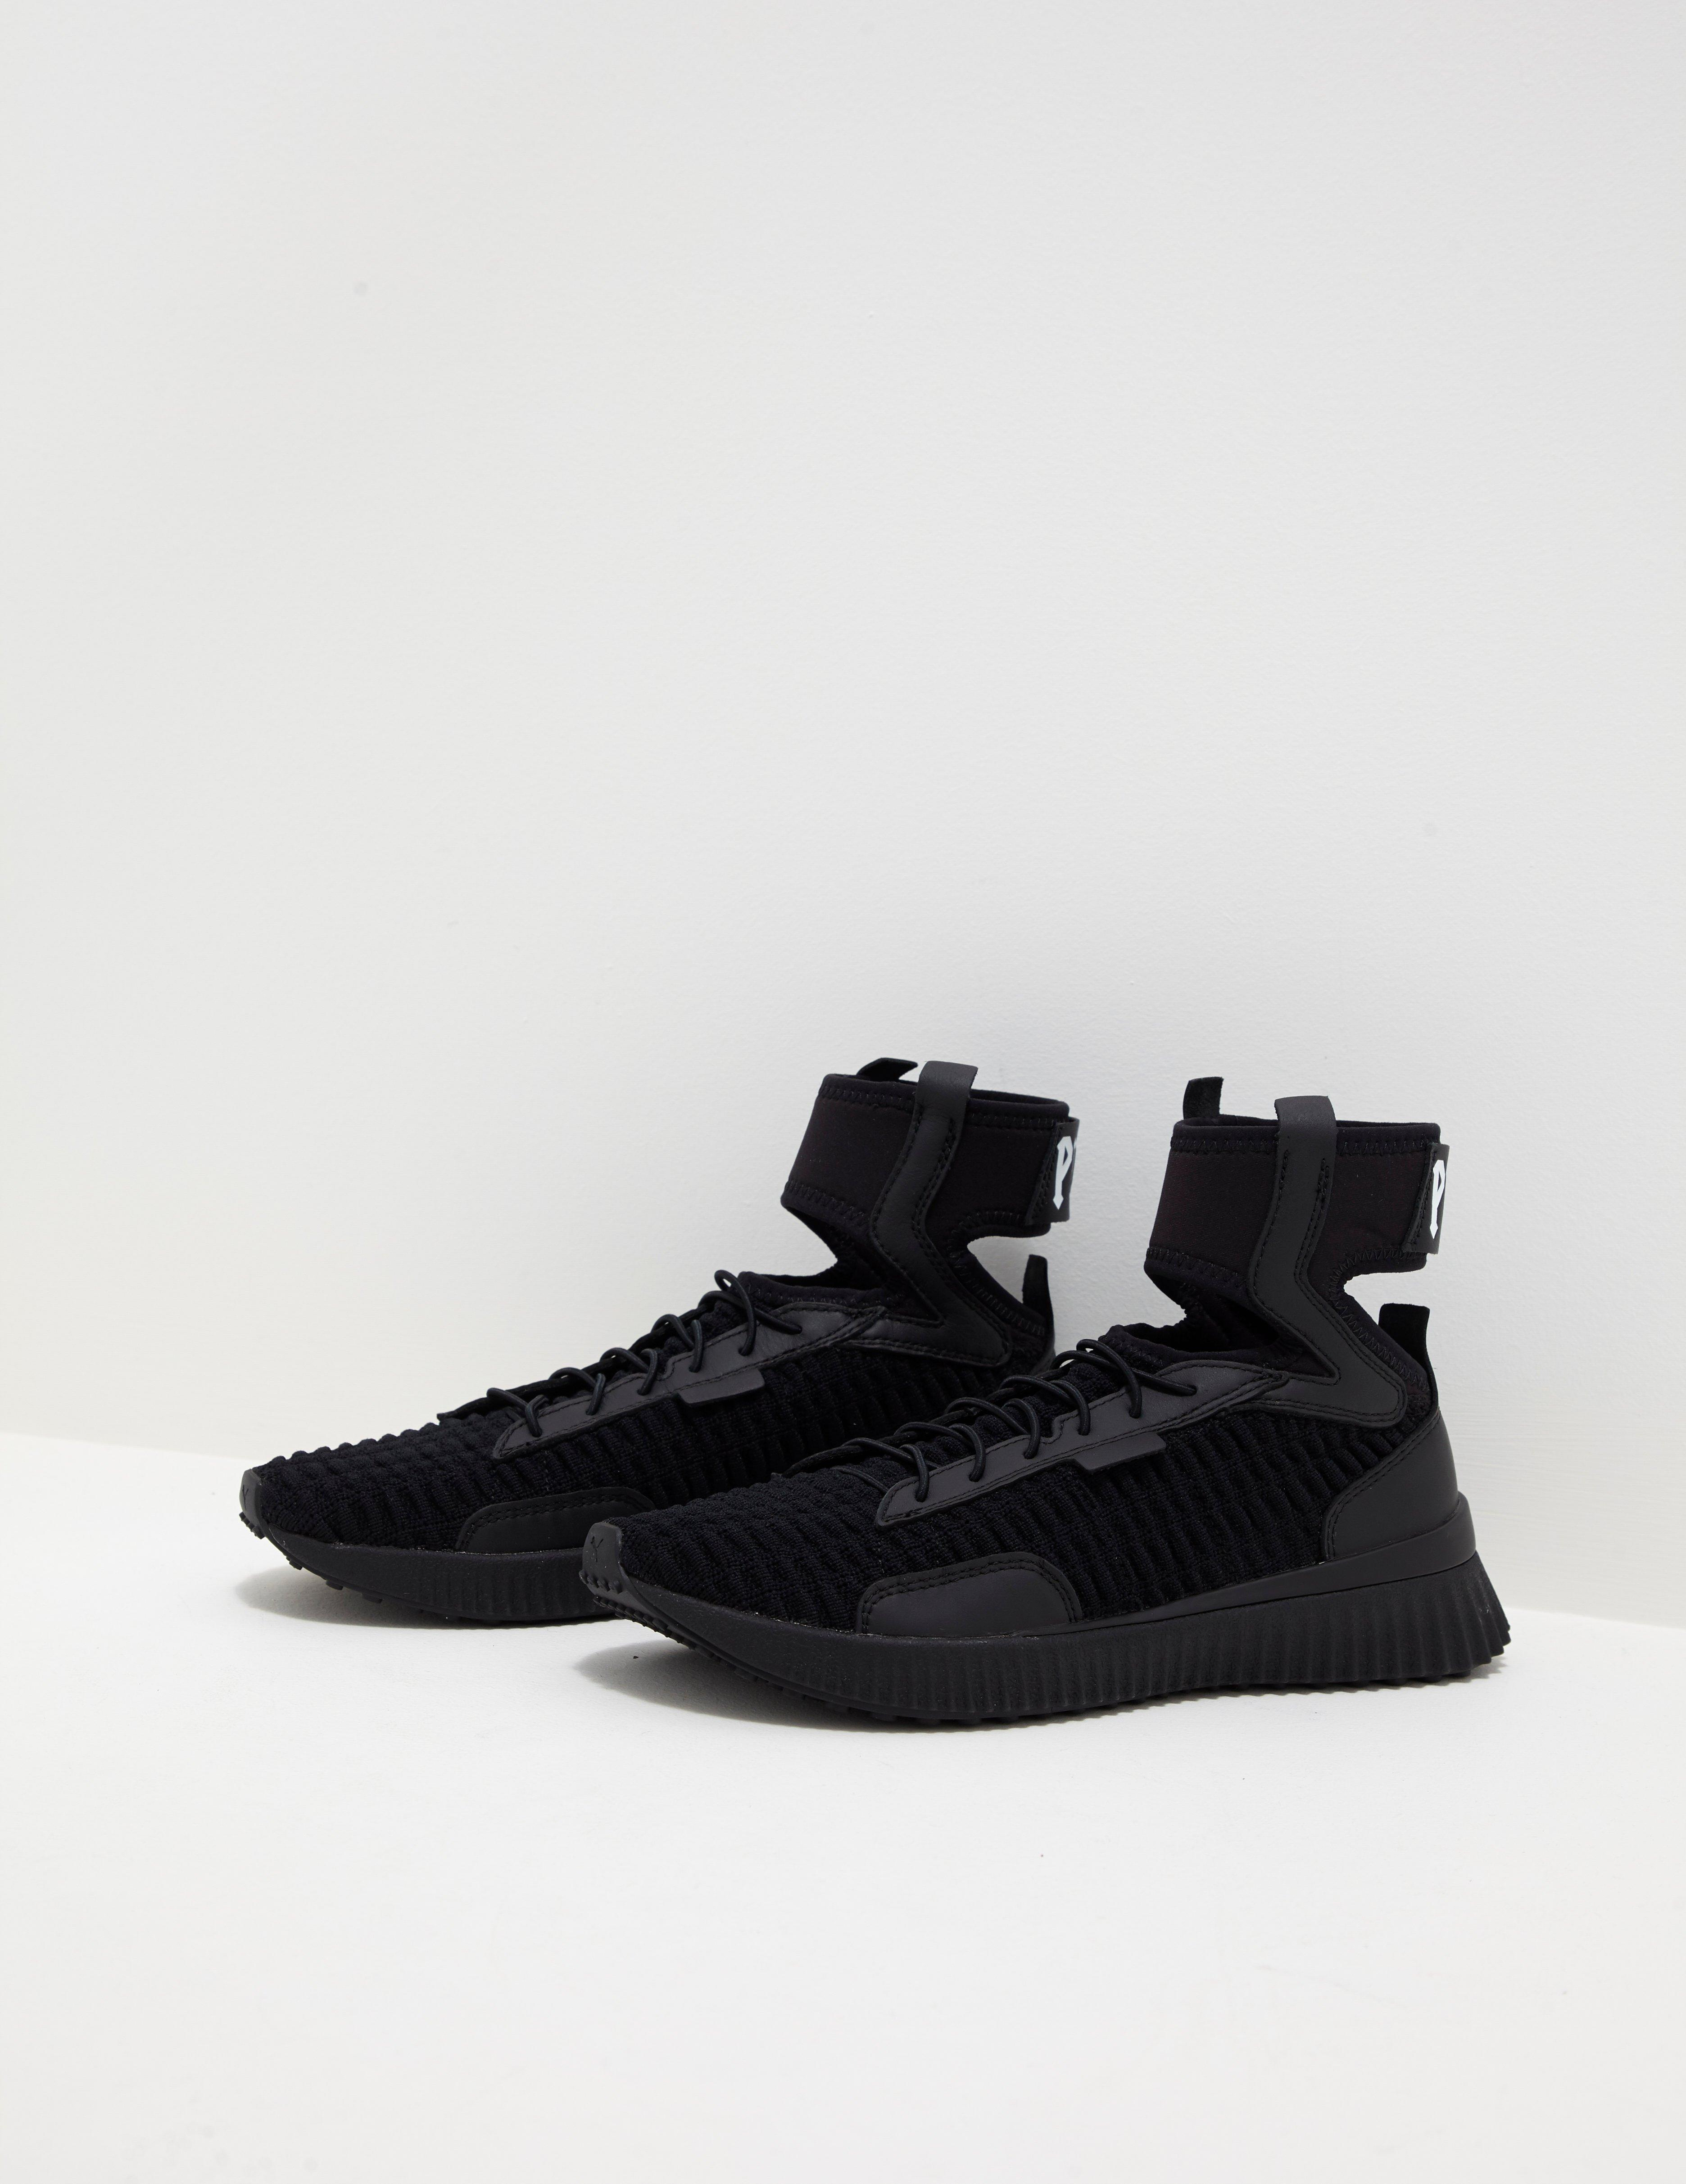 uk availability ac6a1 d8ead PUMA X Fenty Mid Trainer - Online Exclusive Black in Black ...